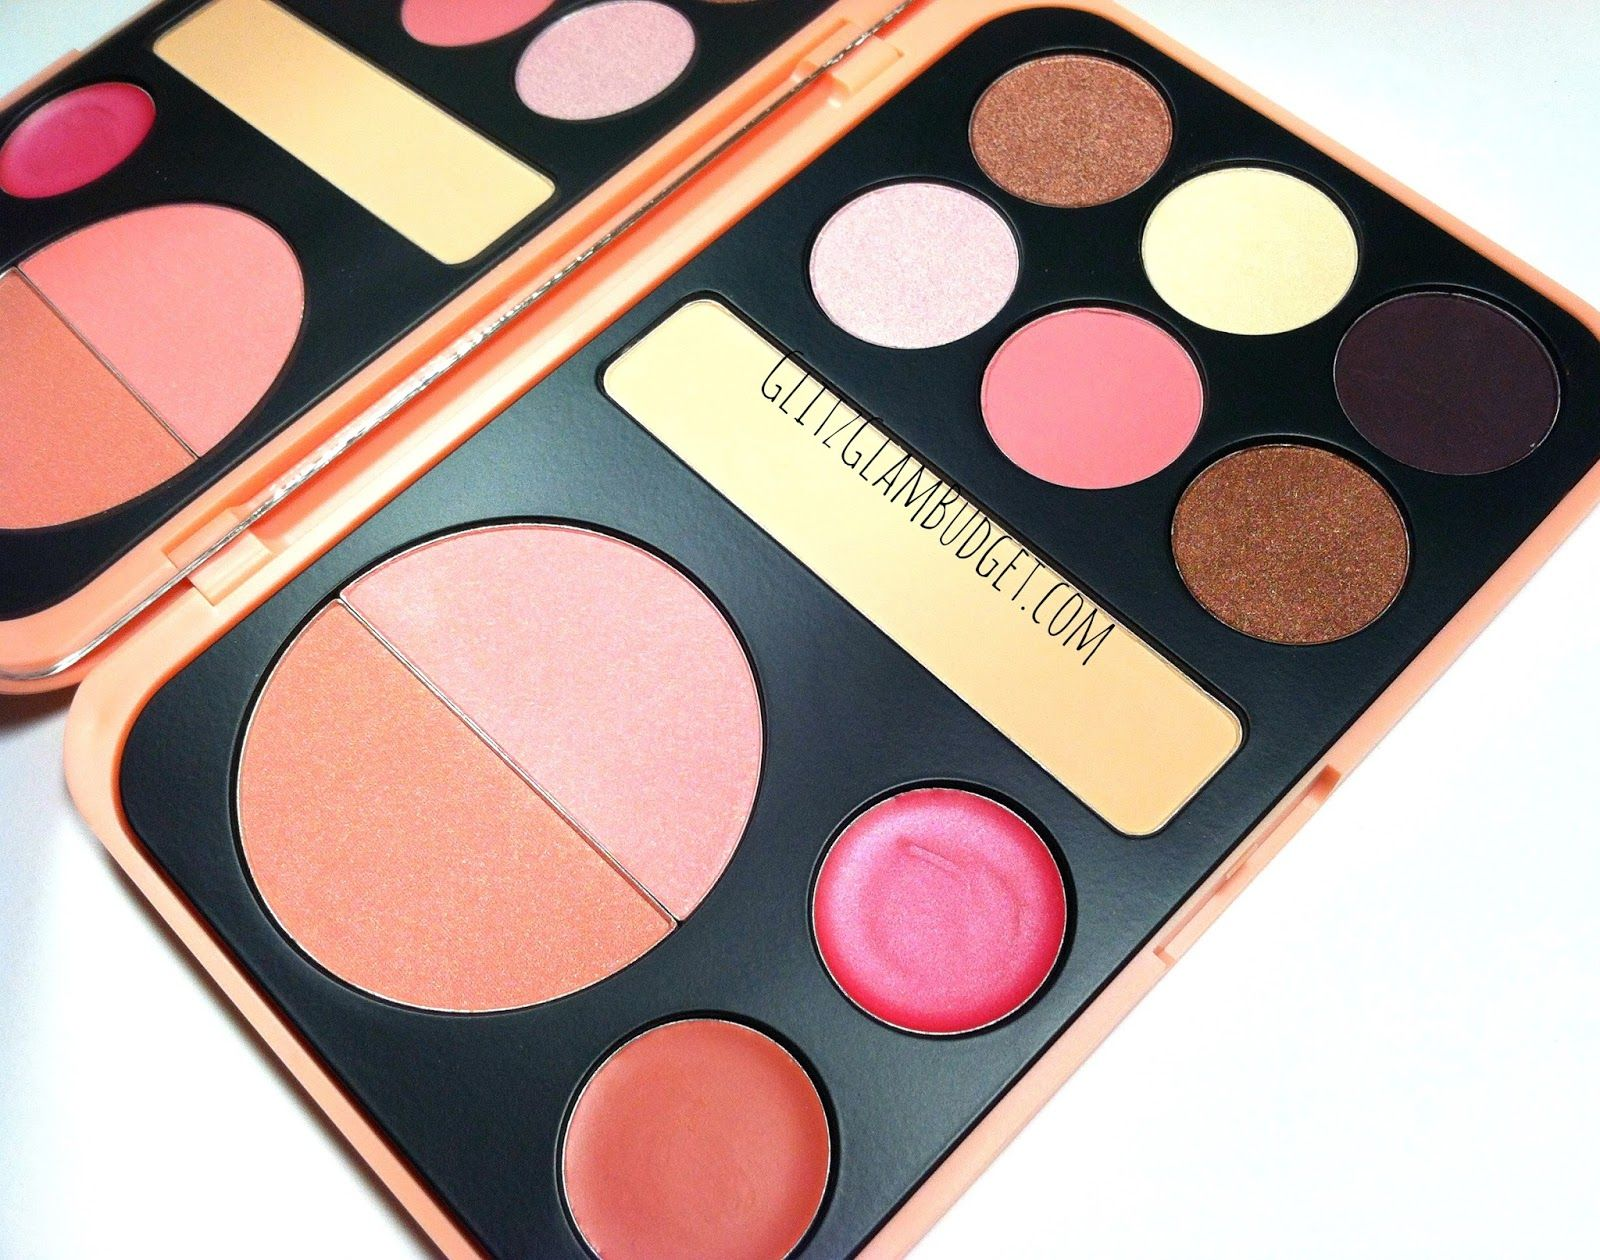 BH Cosmetics Forever Nude Makeup Palette Review with